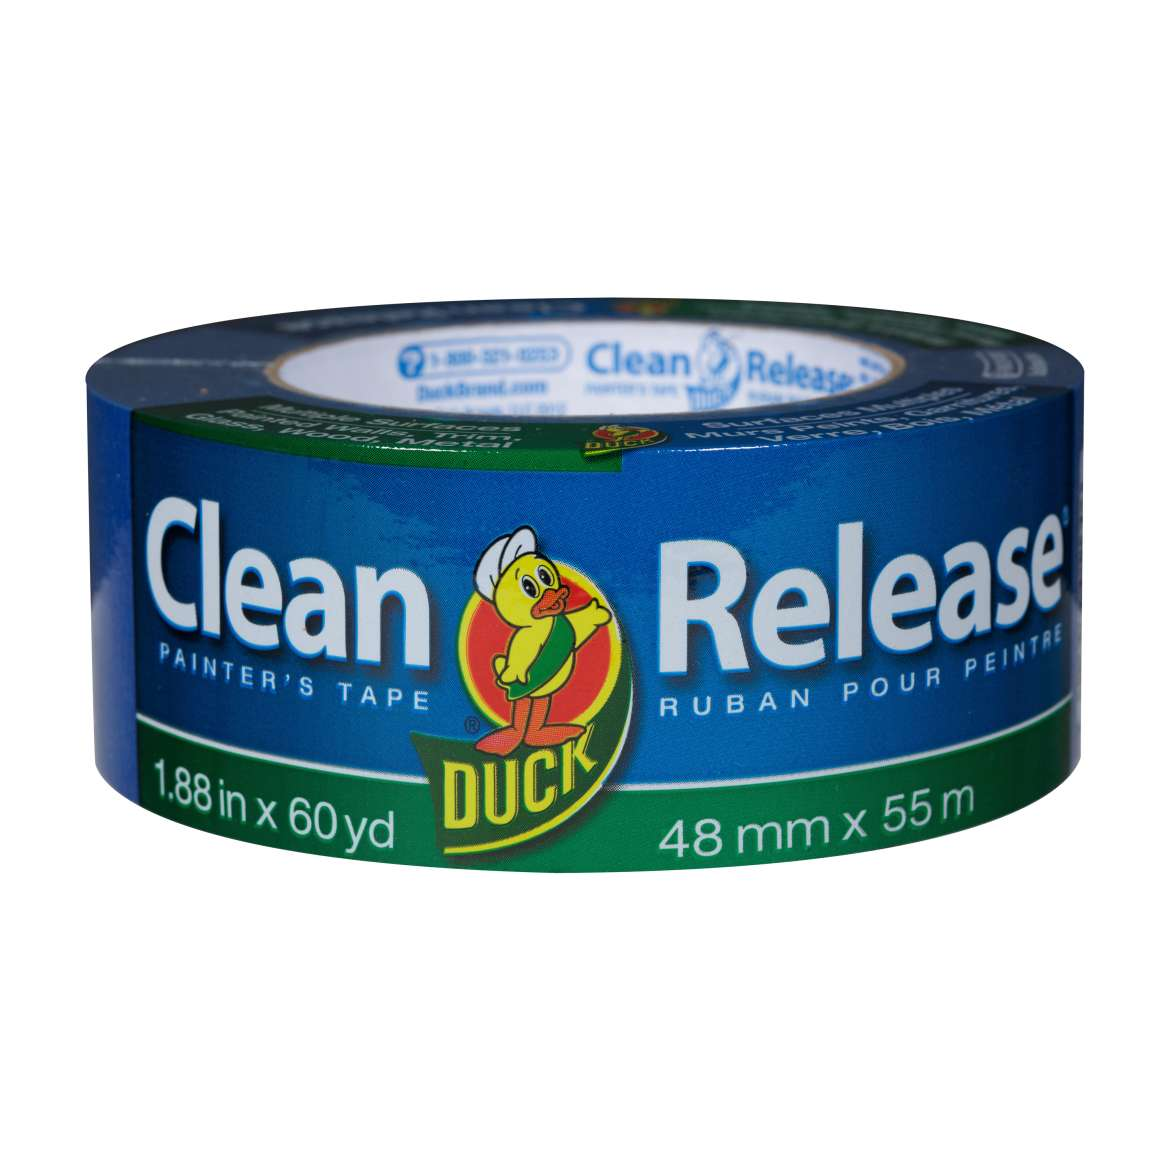 Clean Release® Painter's Tape - Blue, 1.88 in. x 60 yd. Image